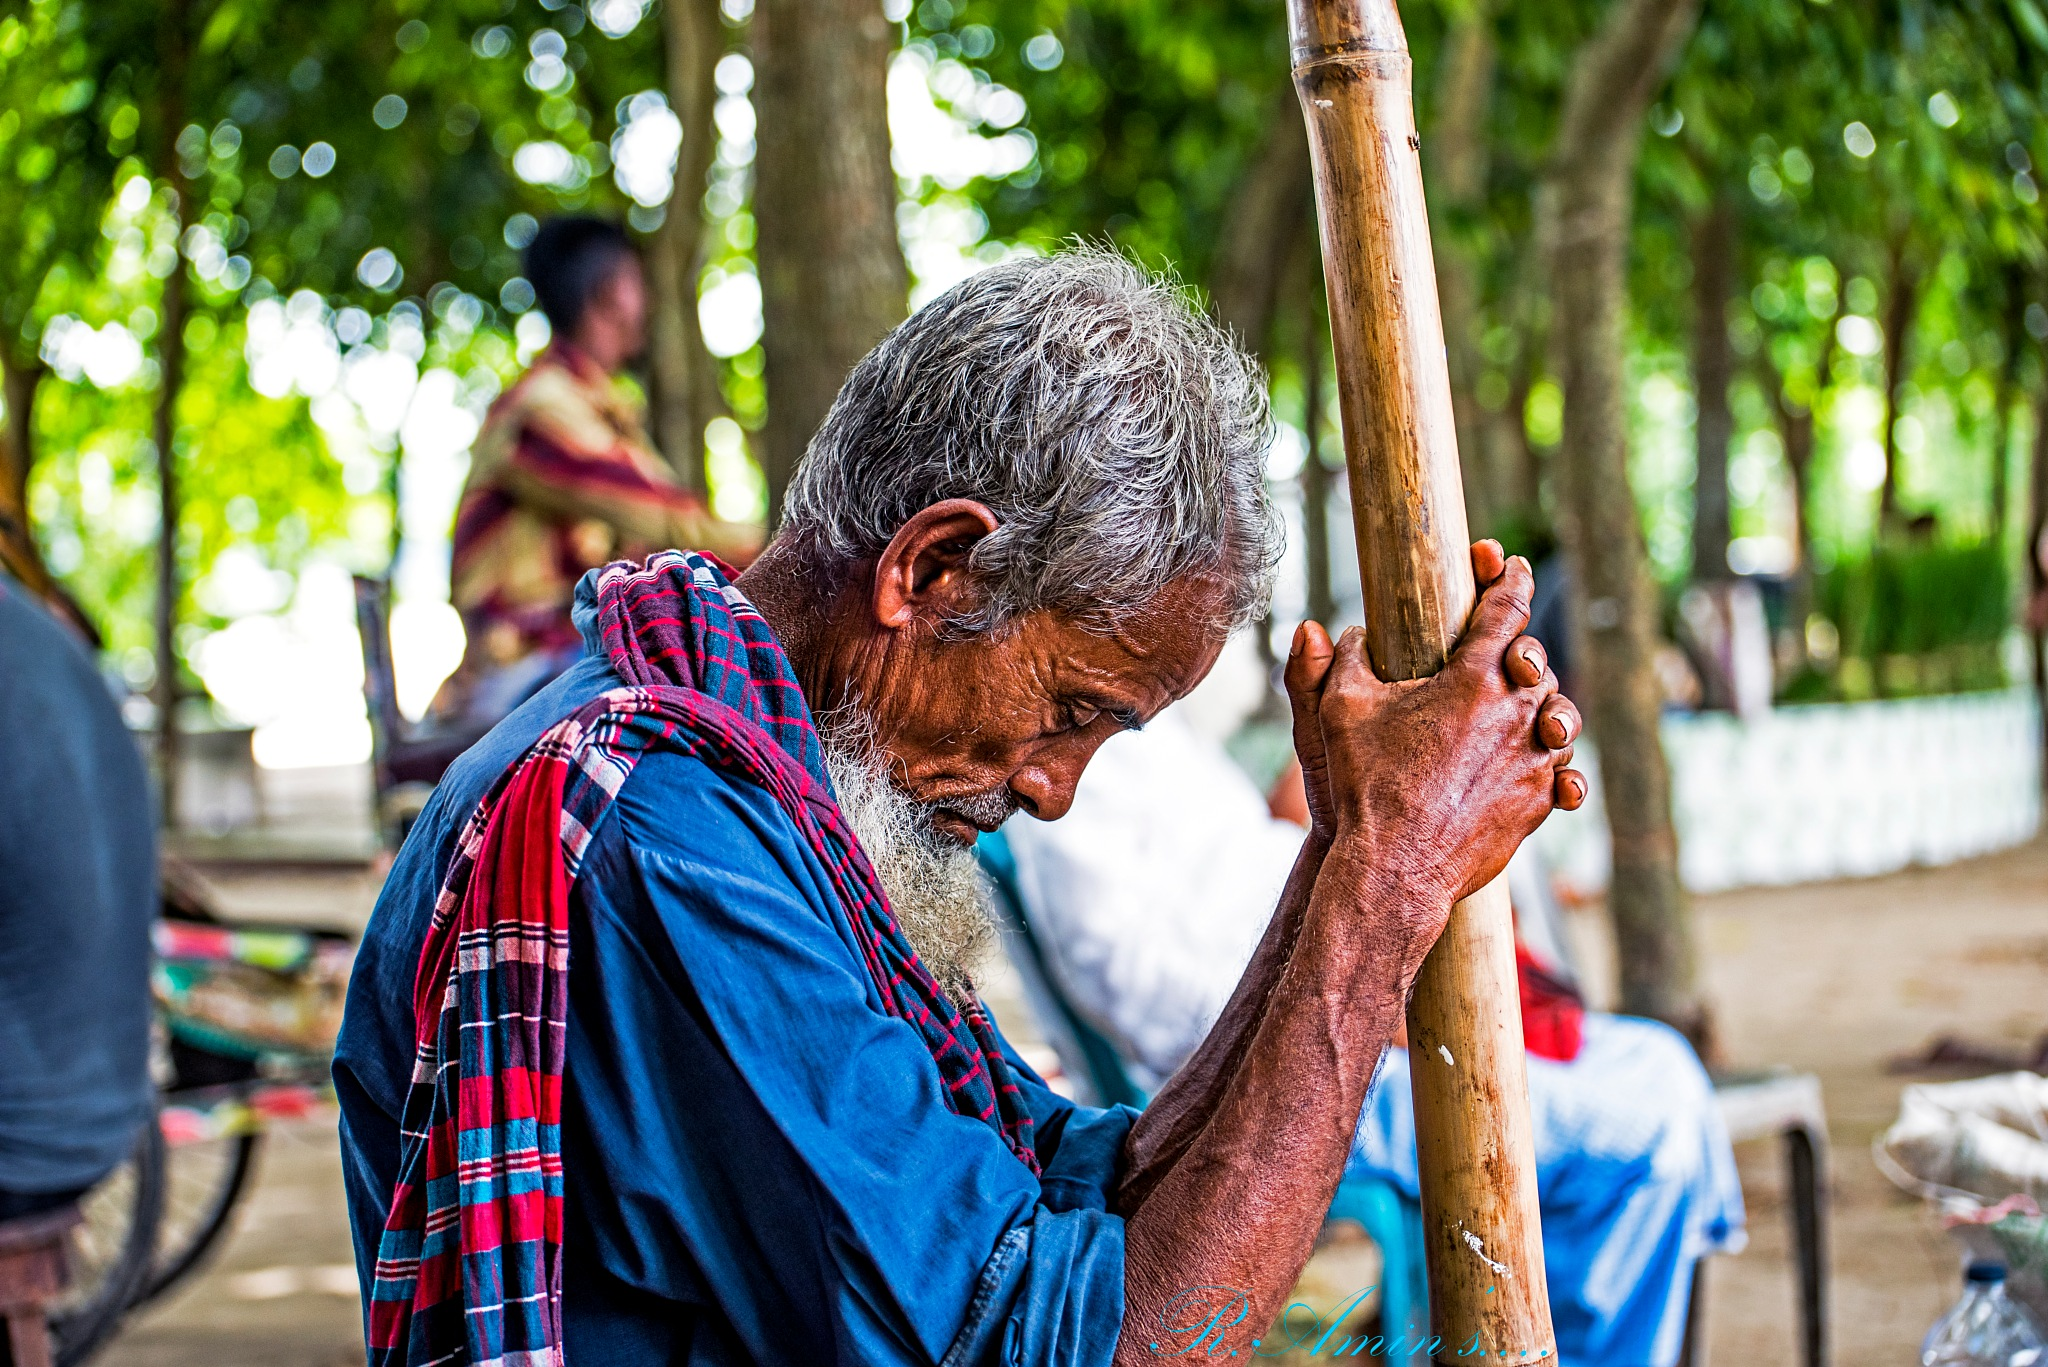 A Tired old Men sleeps on the street and hold bamboo with two hands.... by Md. Ruhul Amin